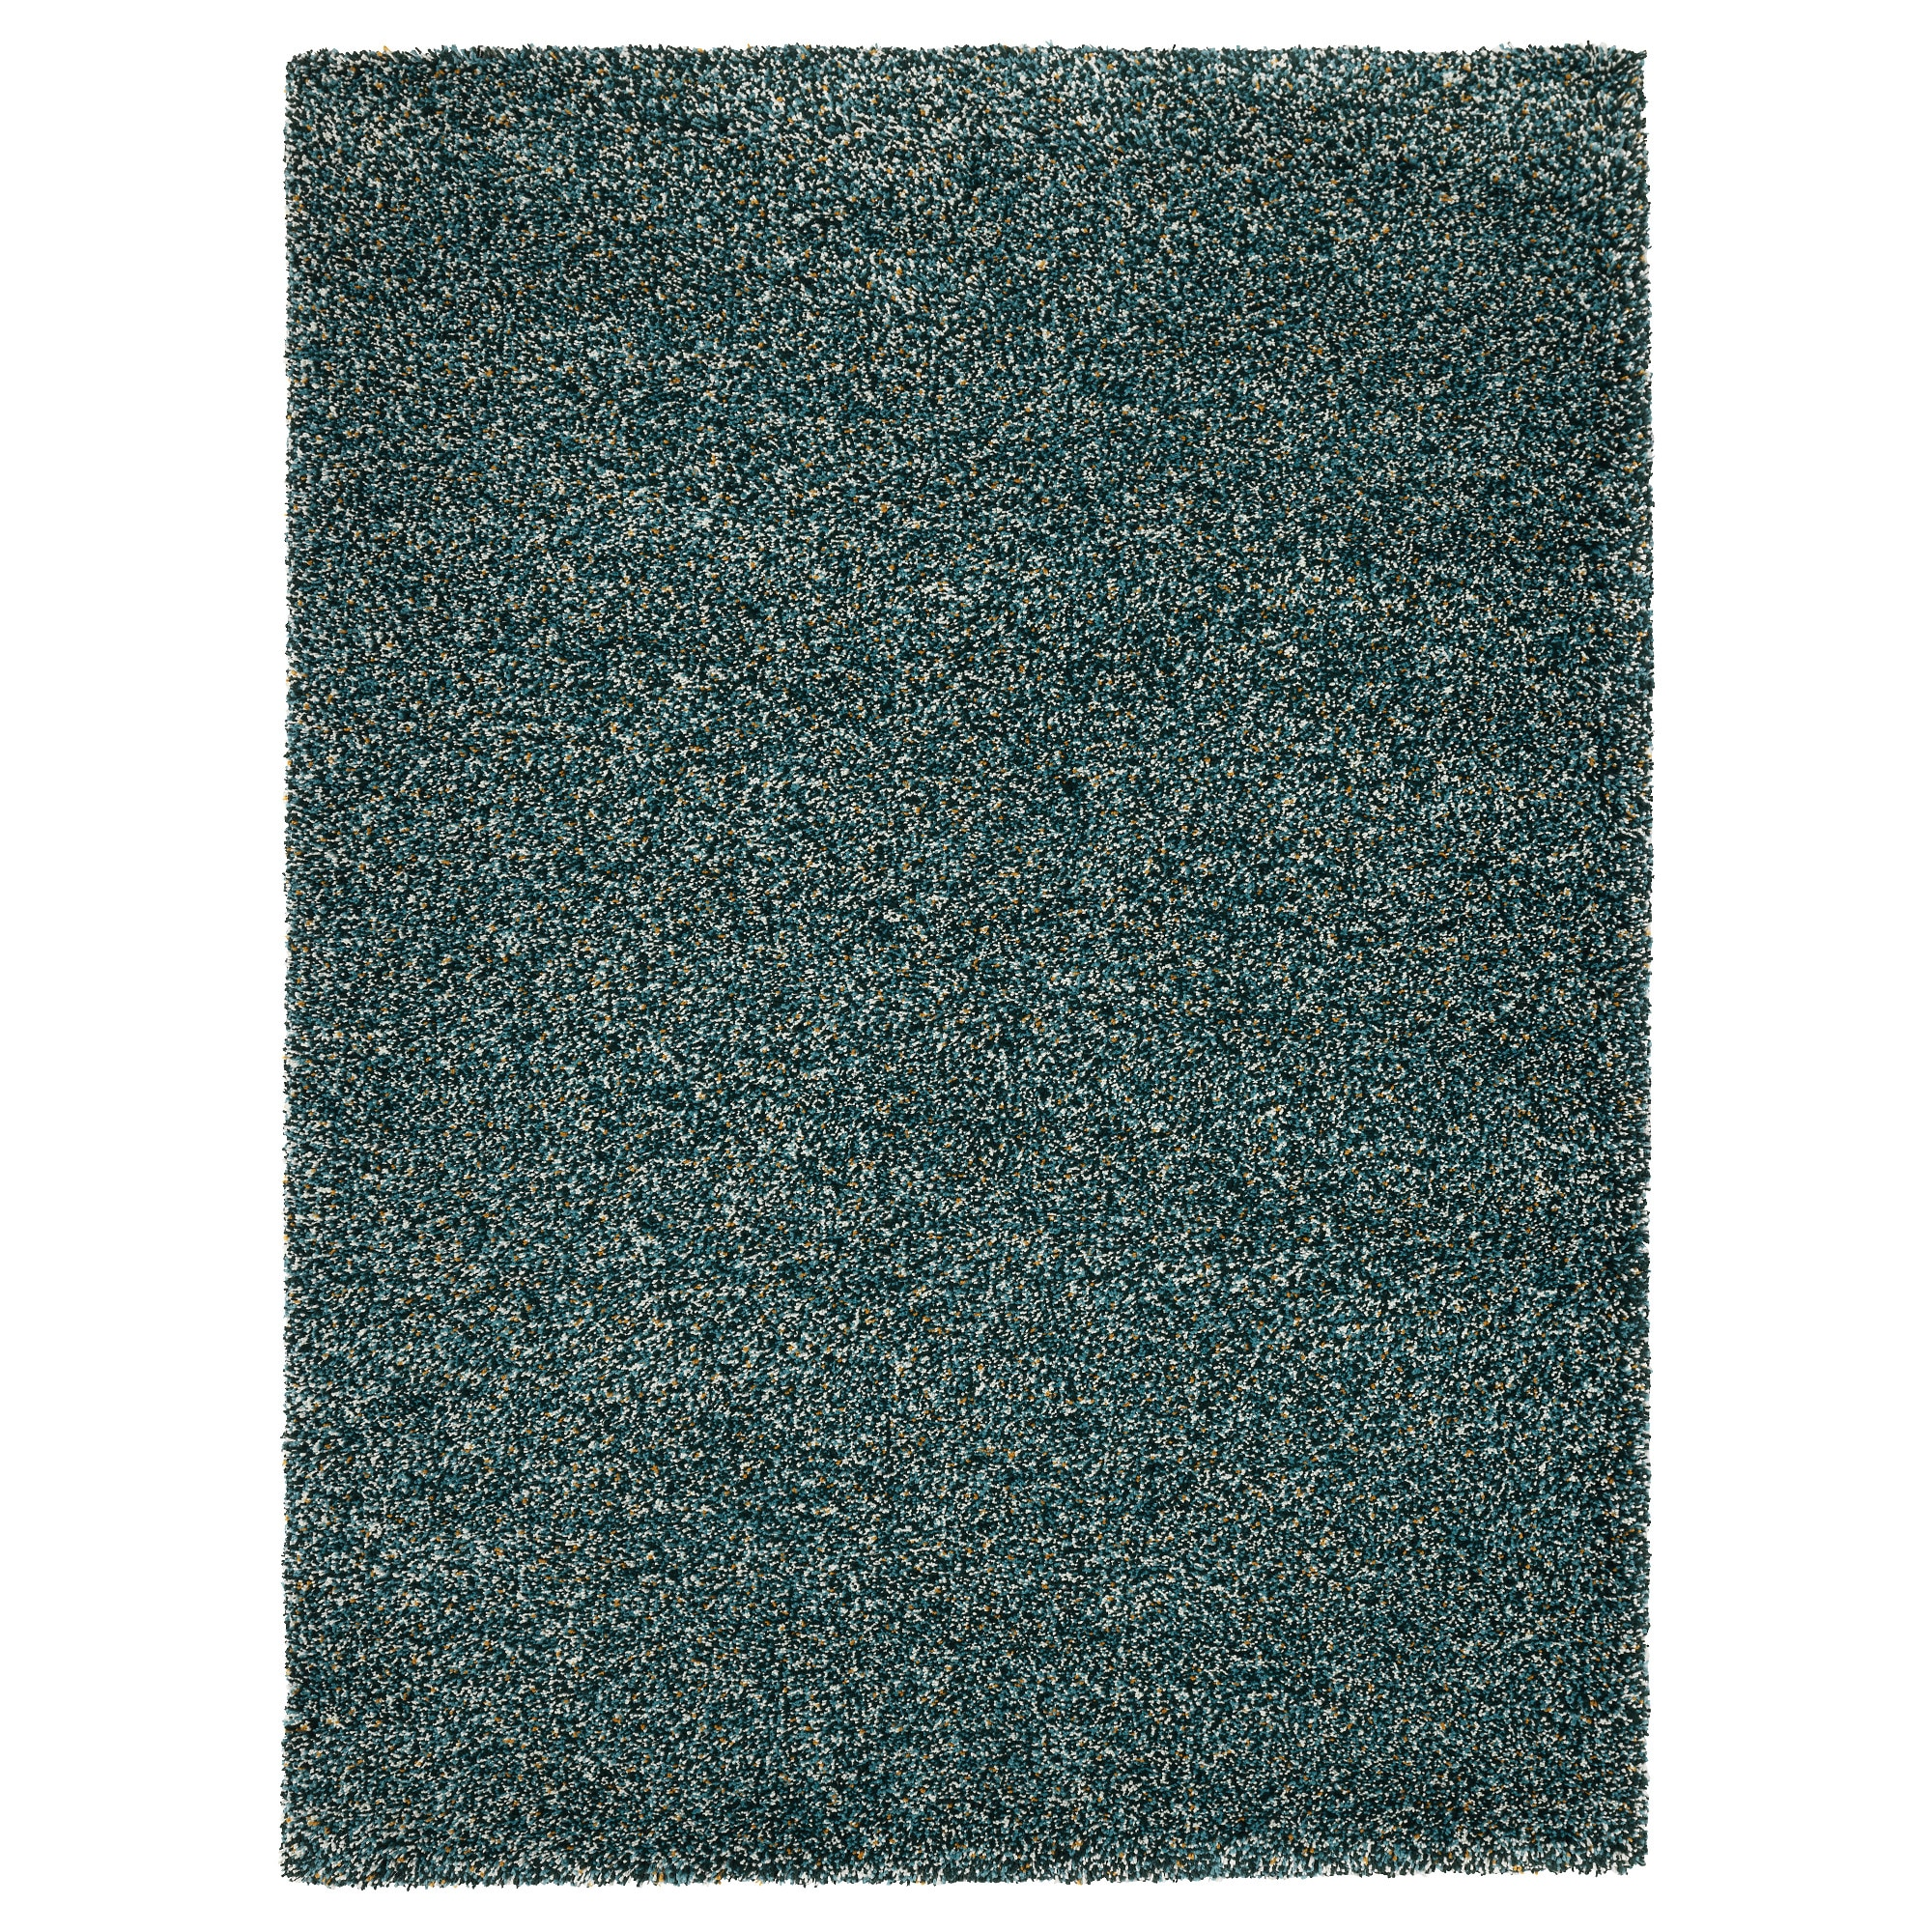 Vindum Rug High Pile